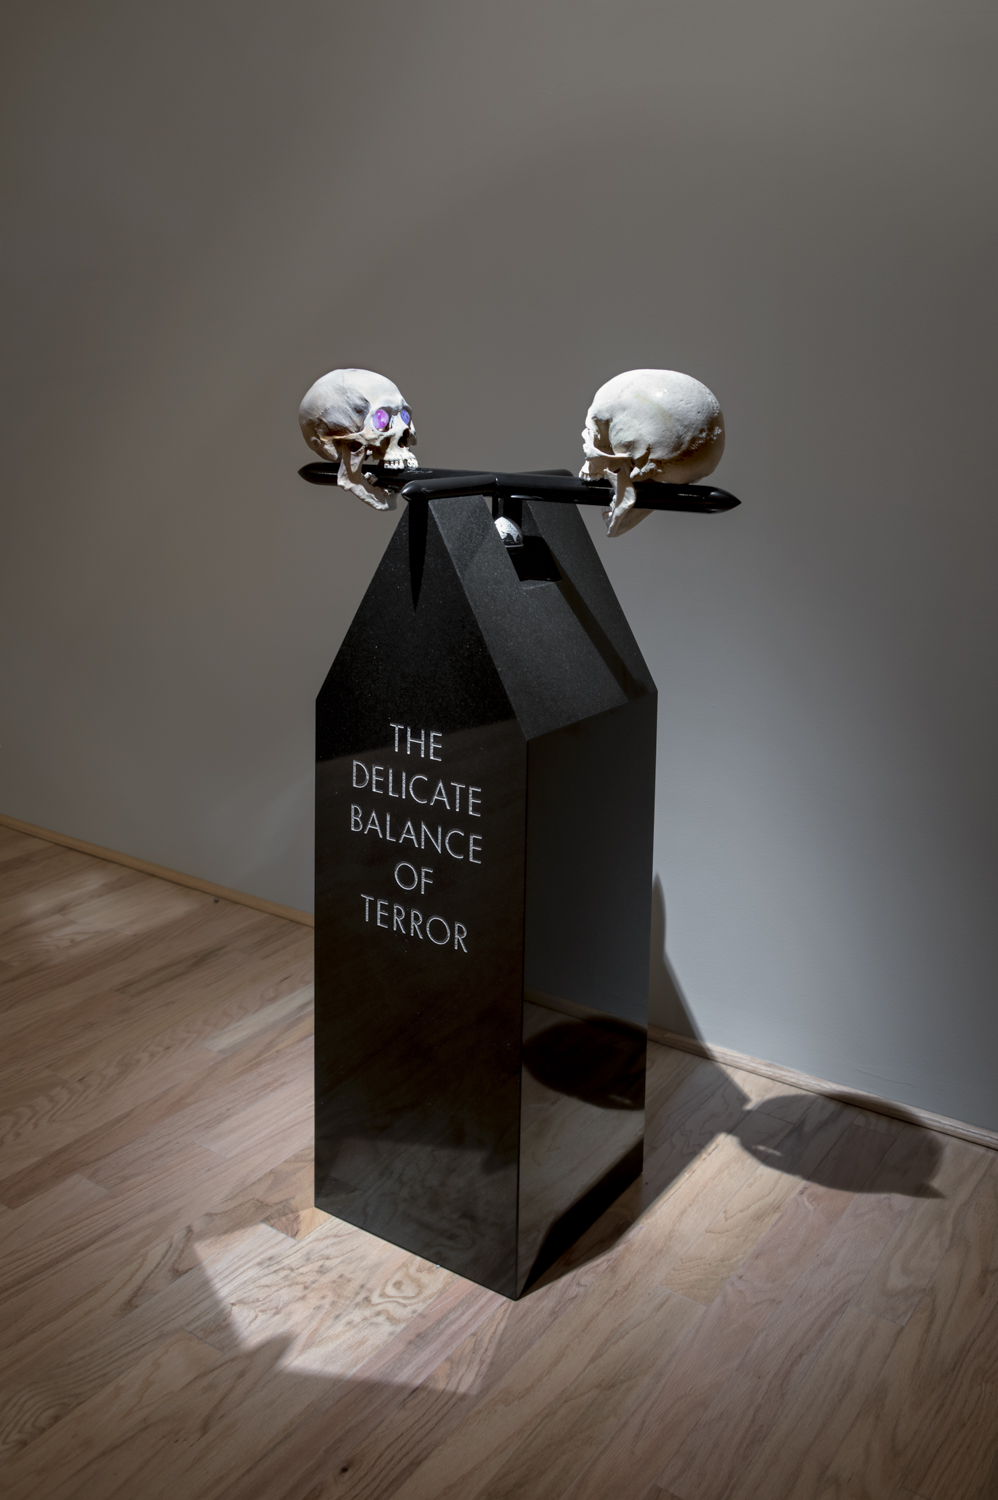 Granite, Black Powder Coated Aluminum, and Human Skulls                                                    50 x 31 x 14 in | 127 x 78.7 x 35.6 cm                                                                                                        2016